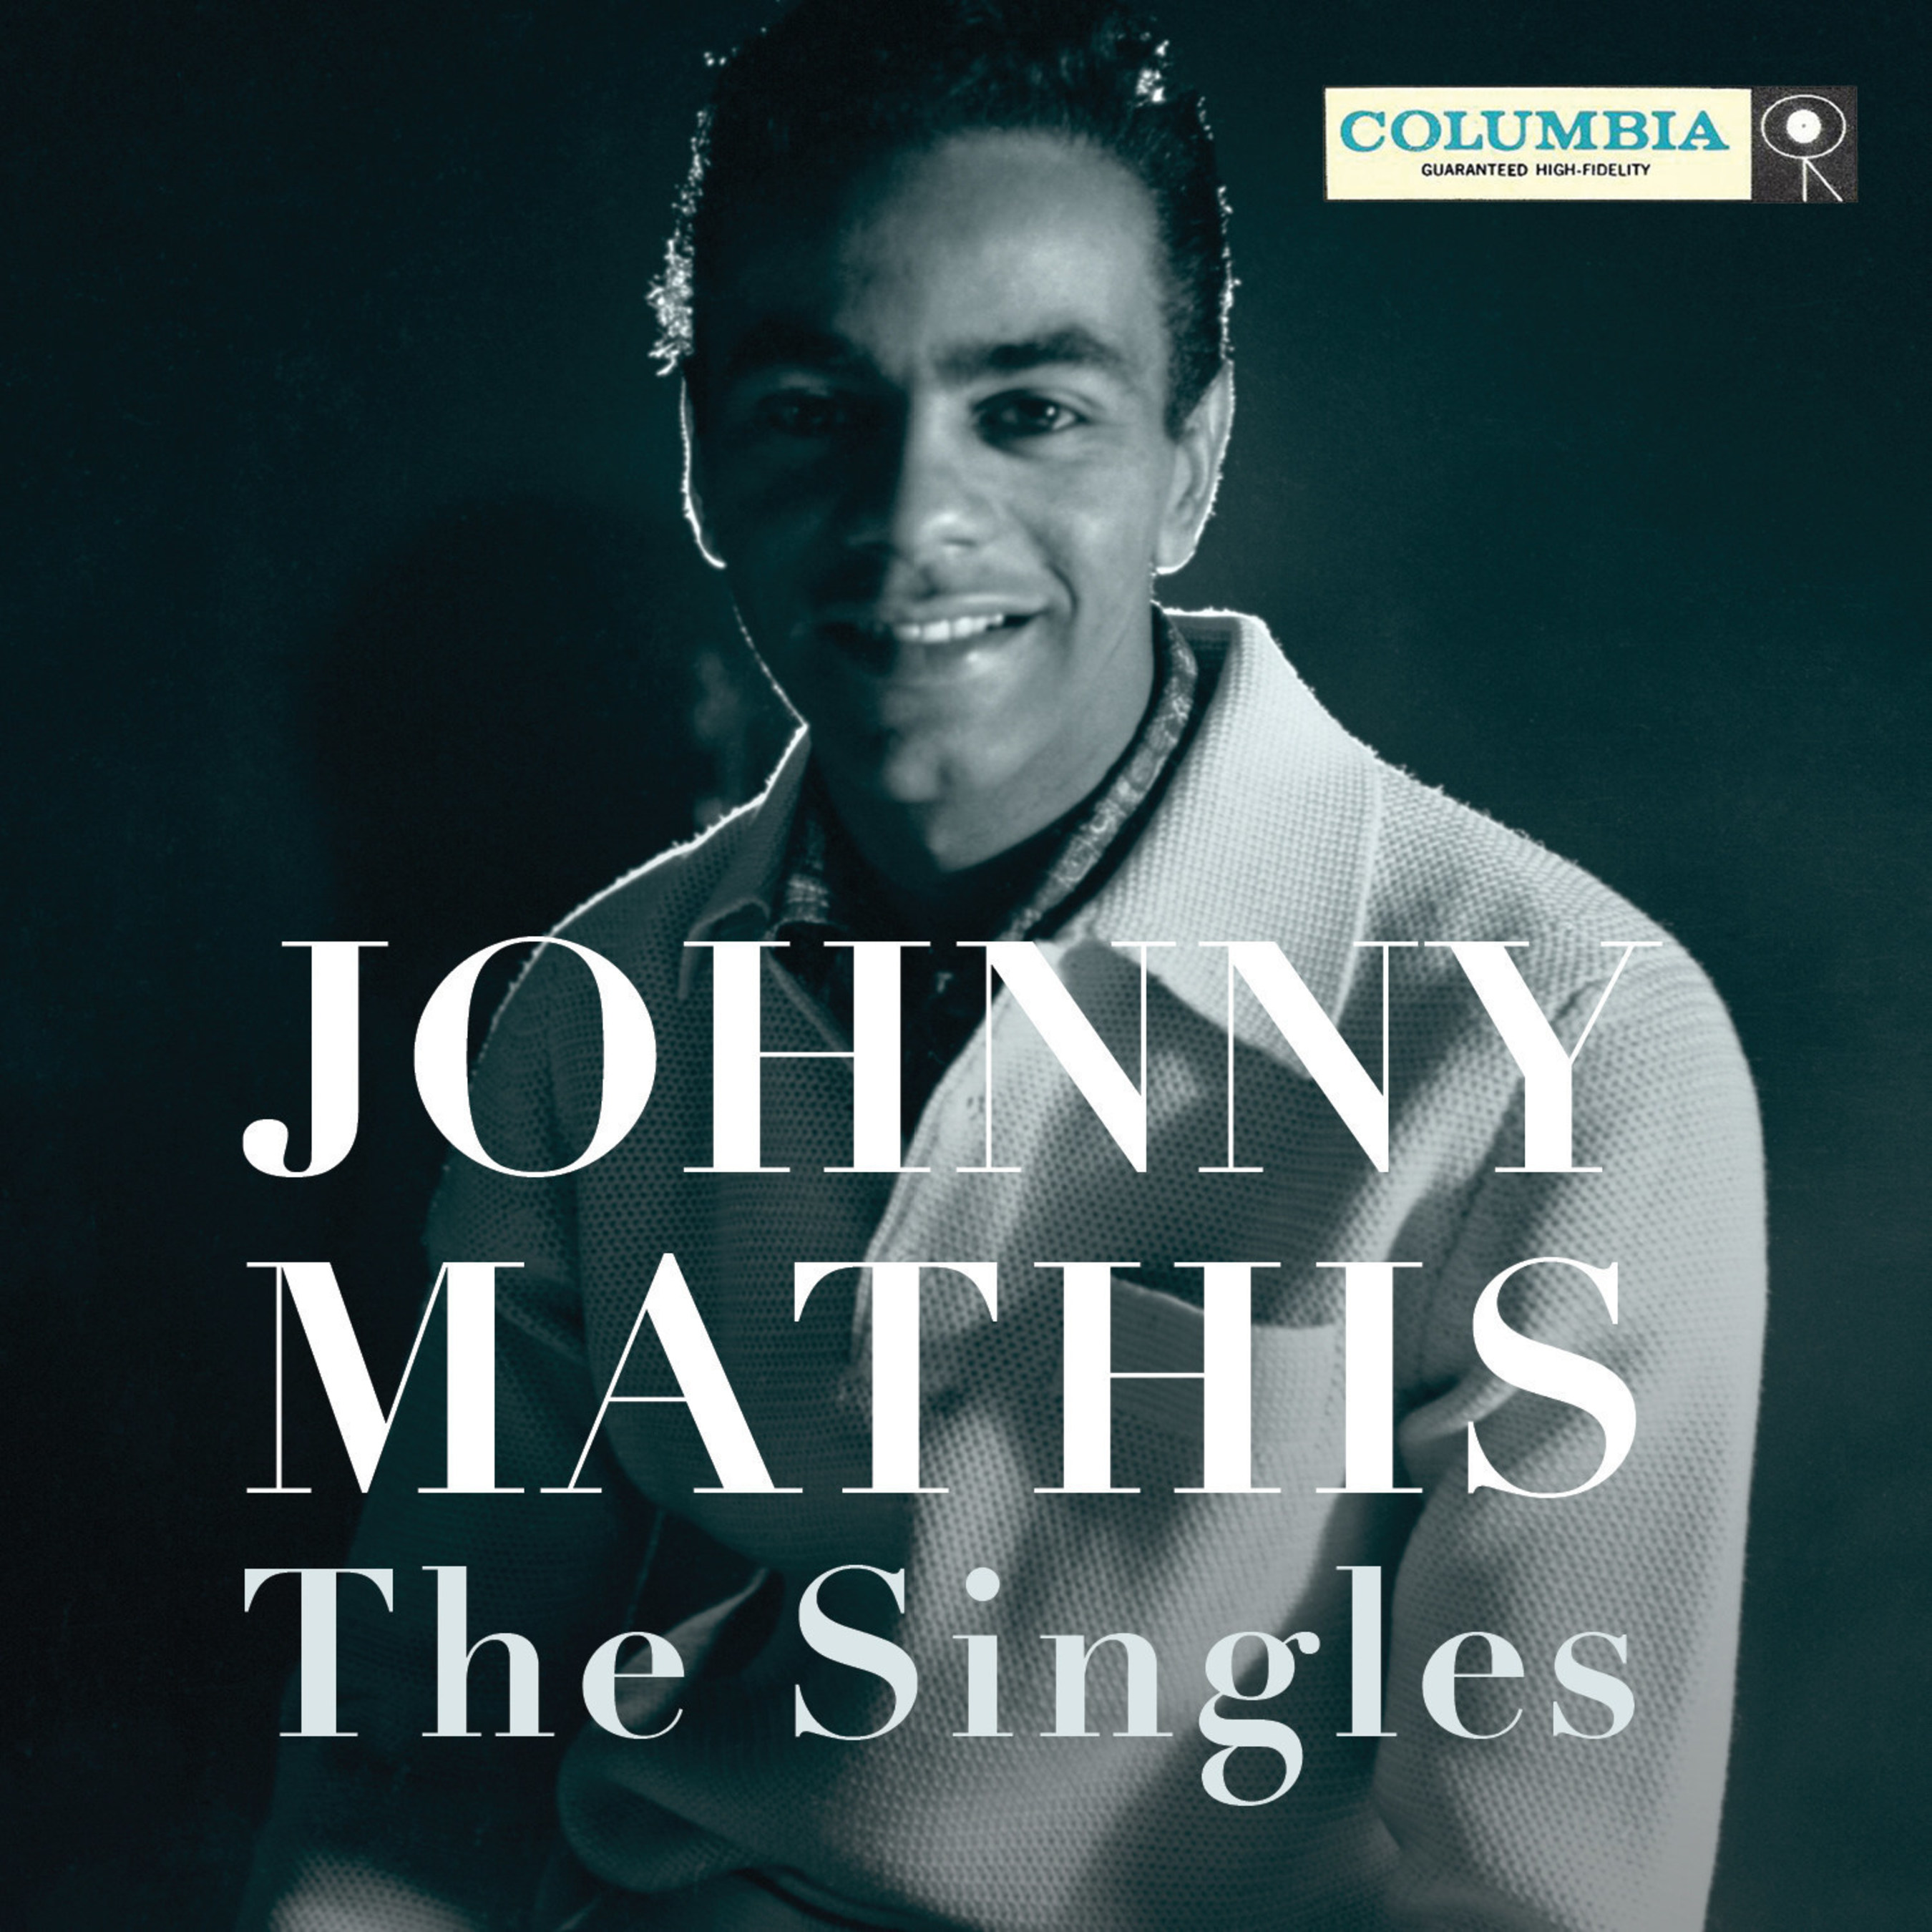 Johnny Mathis: The Singles, a definitive four disc anthology to be released on September 25, 2015.